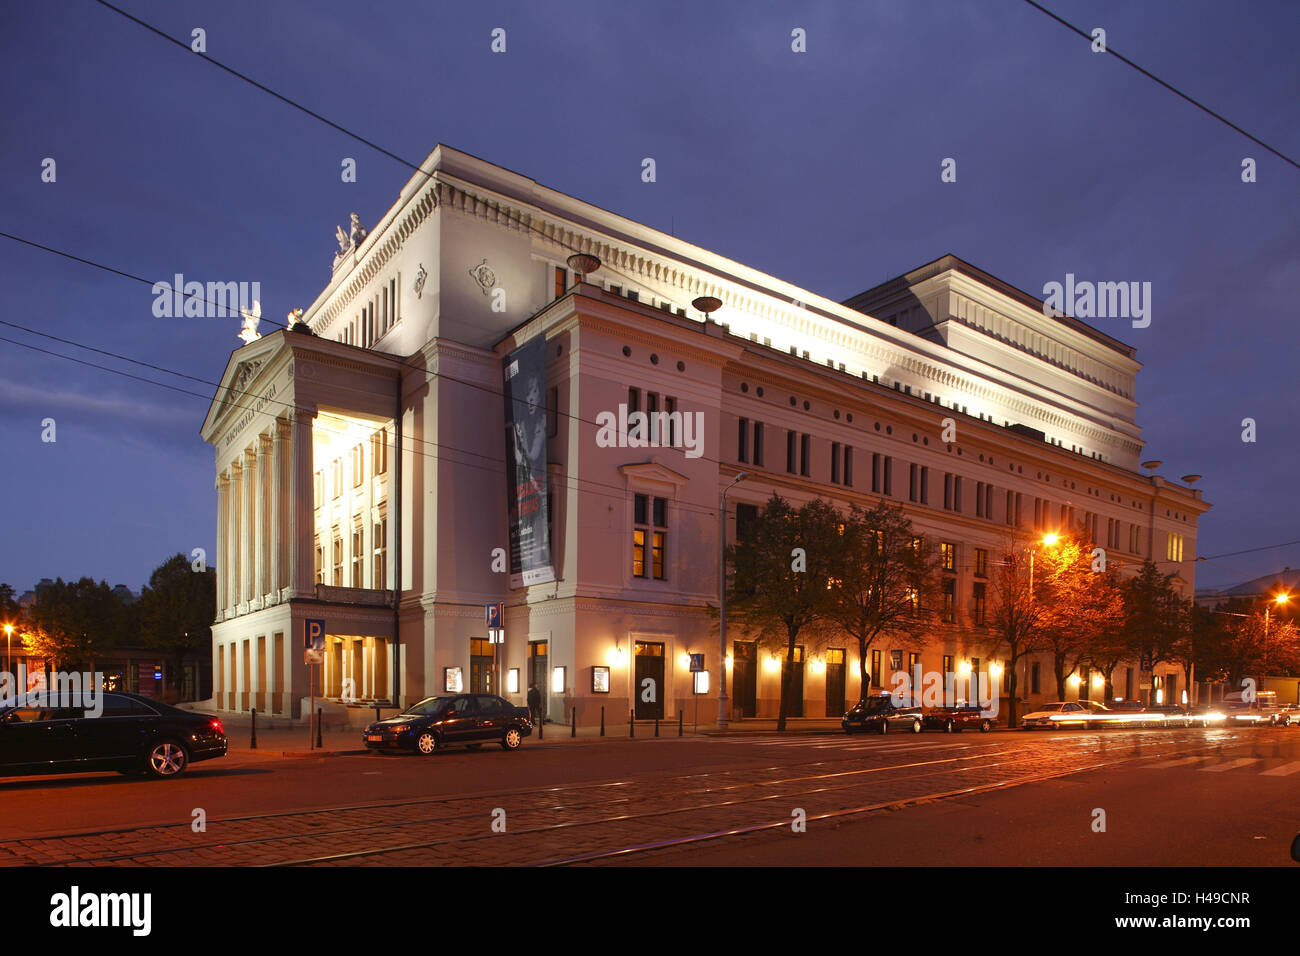 Latvia, Riga, Latvian National Opera, the evening, - Stock Image